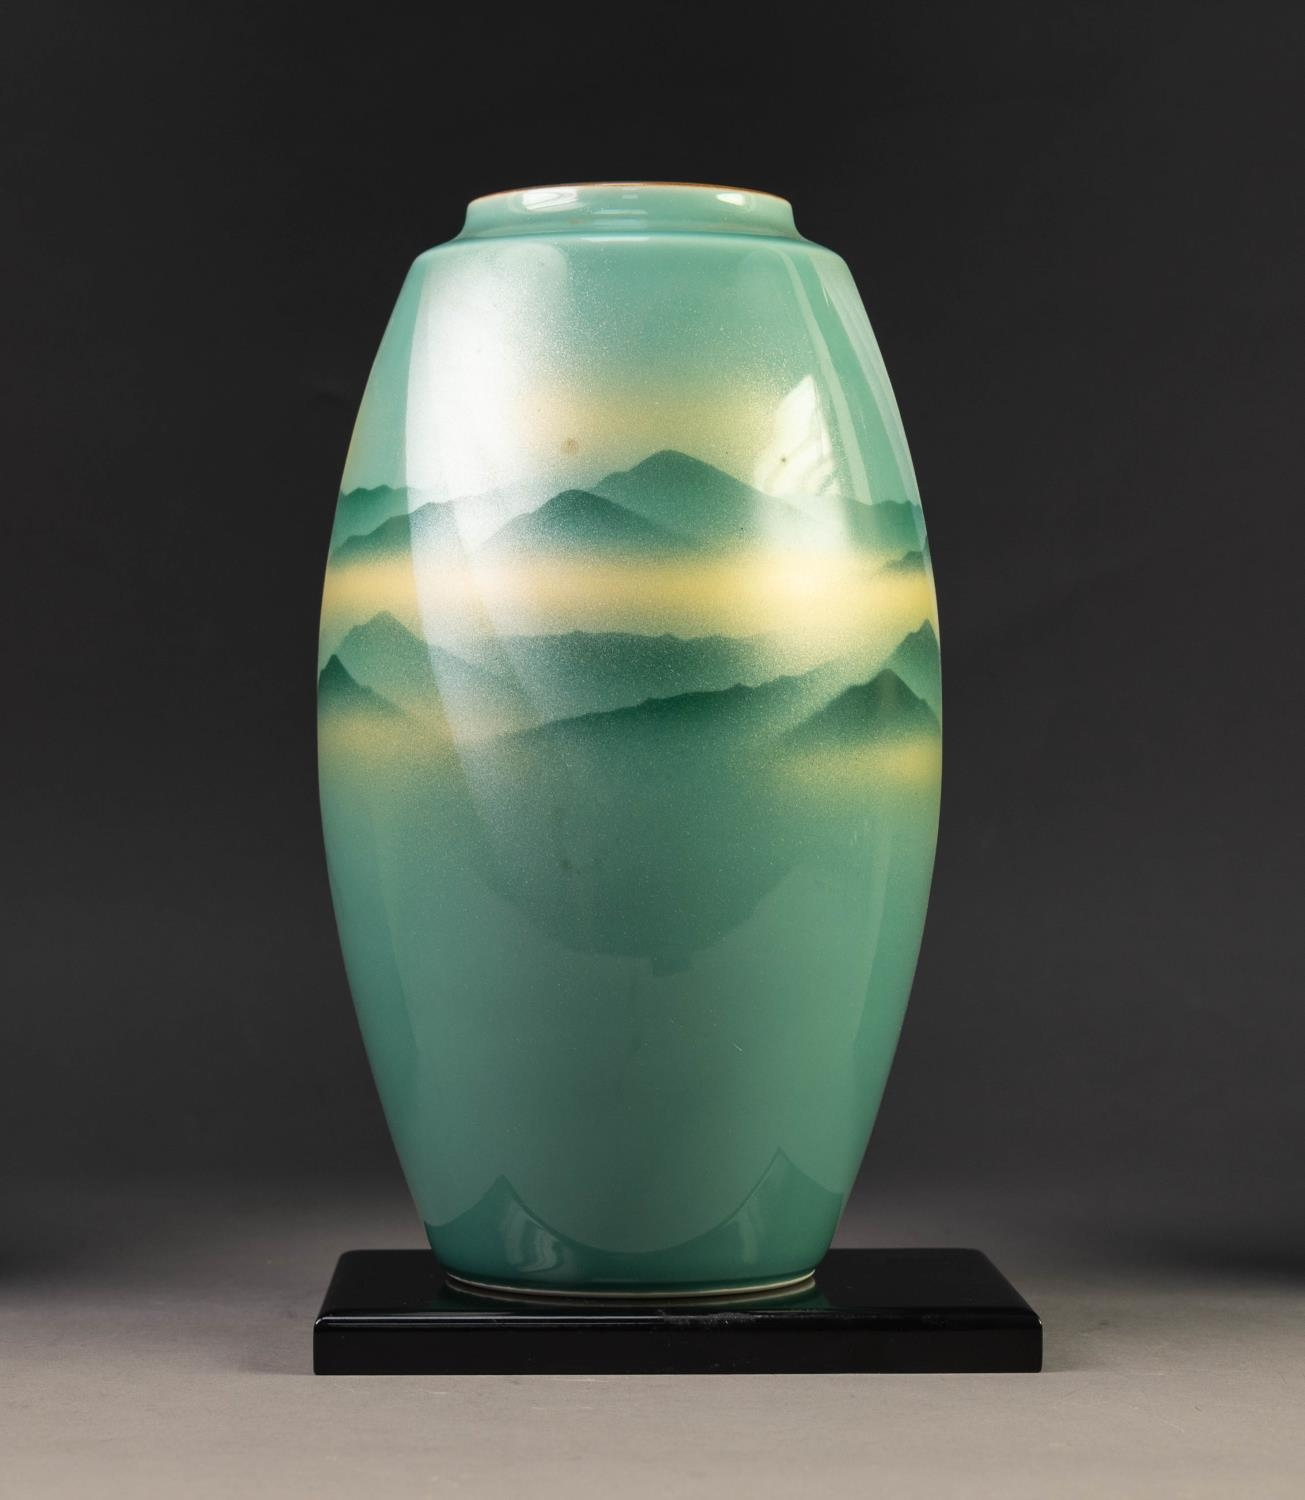 MODERN JAPANESE KUTANI WARE PORCELAIN VASE, of ovoid form, decorated in sprayed shades of green - Image 2 of 5